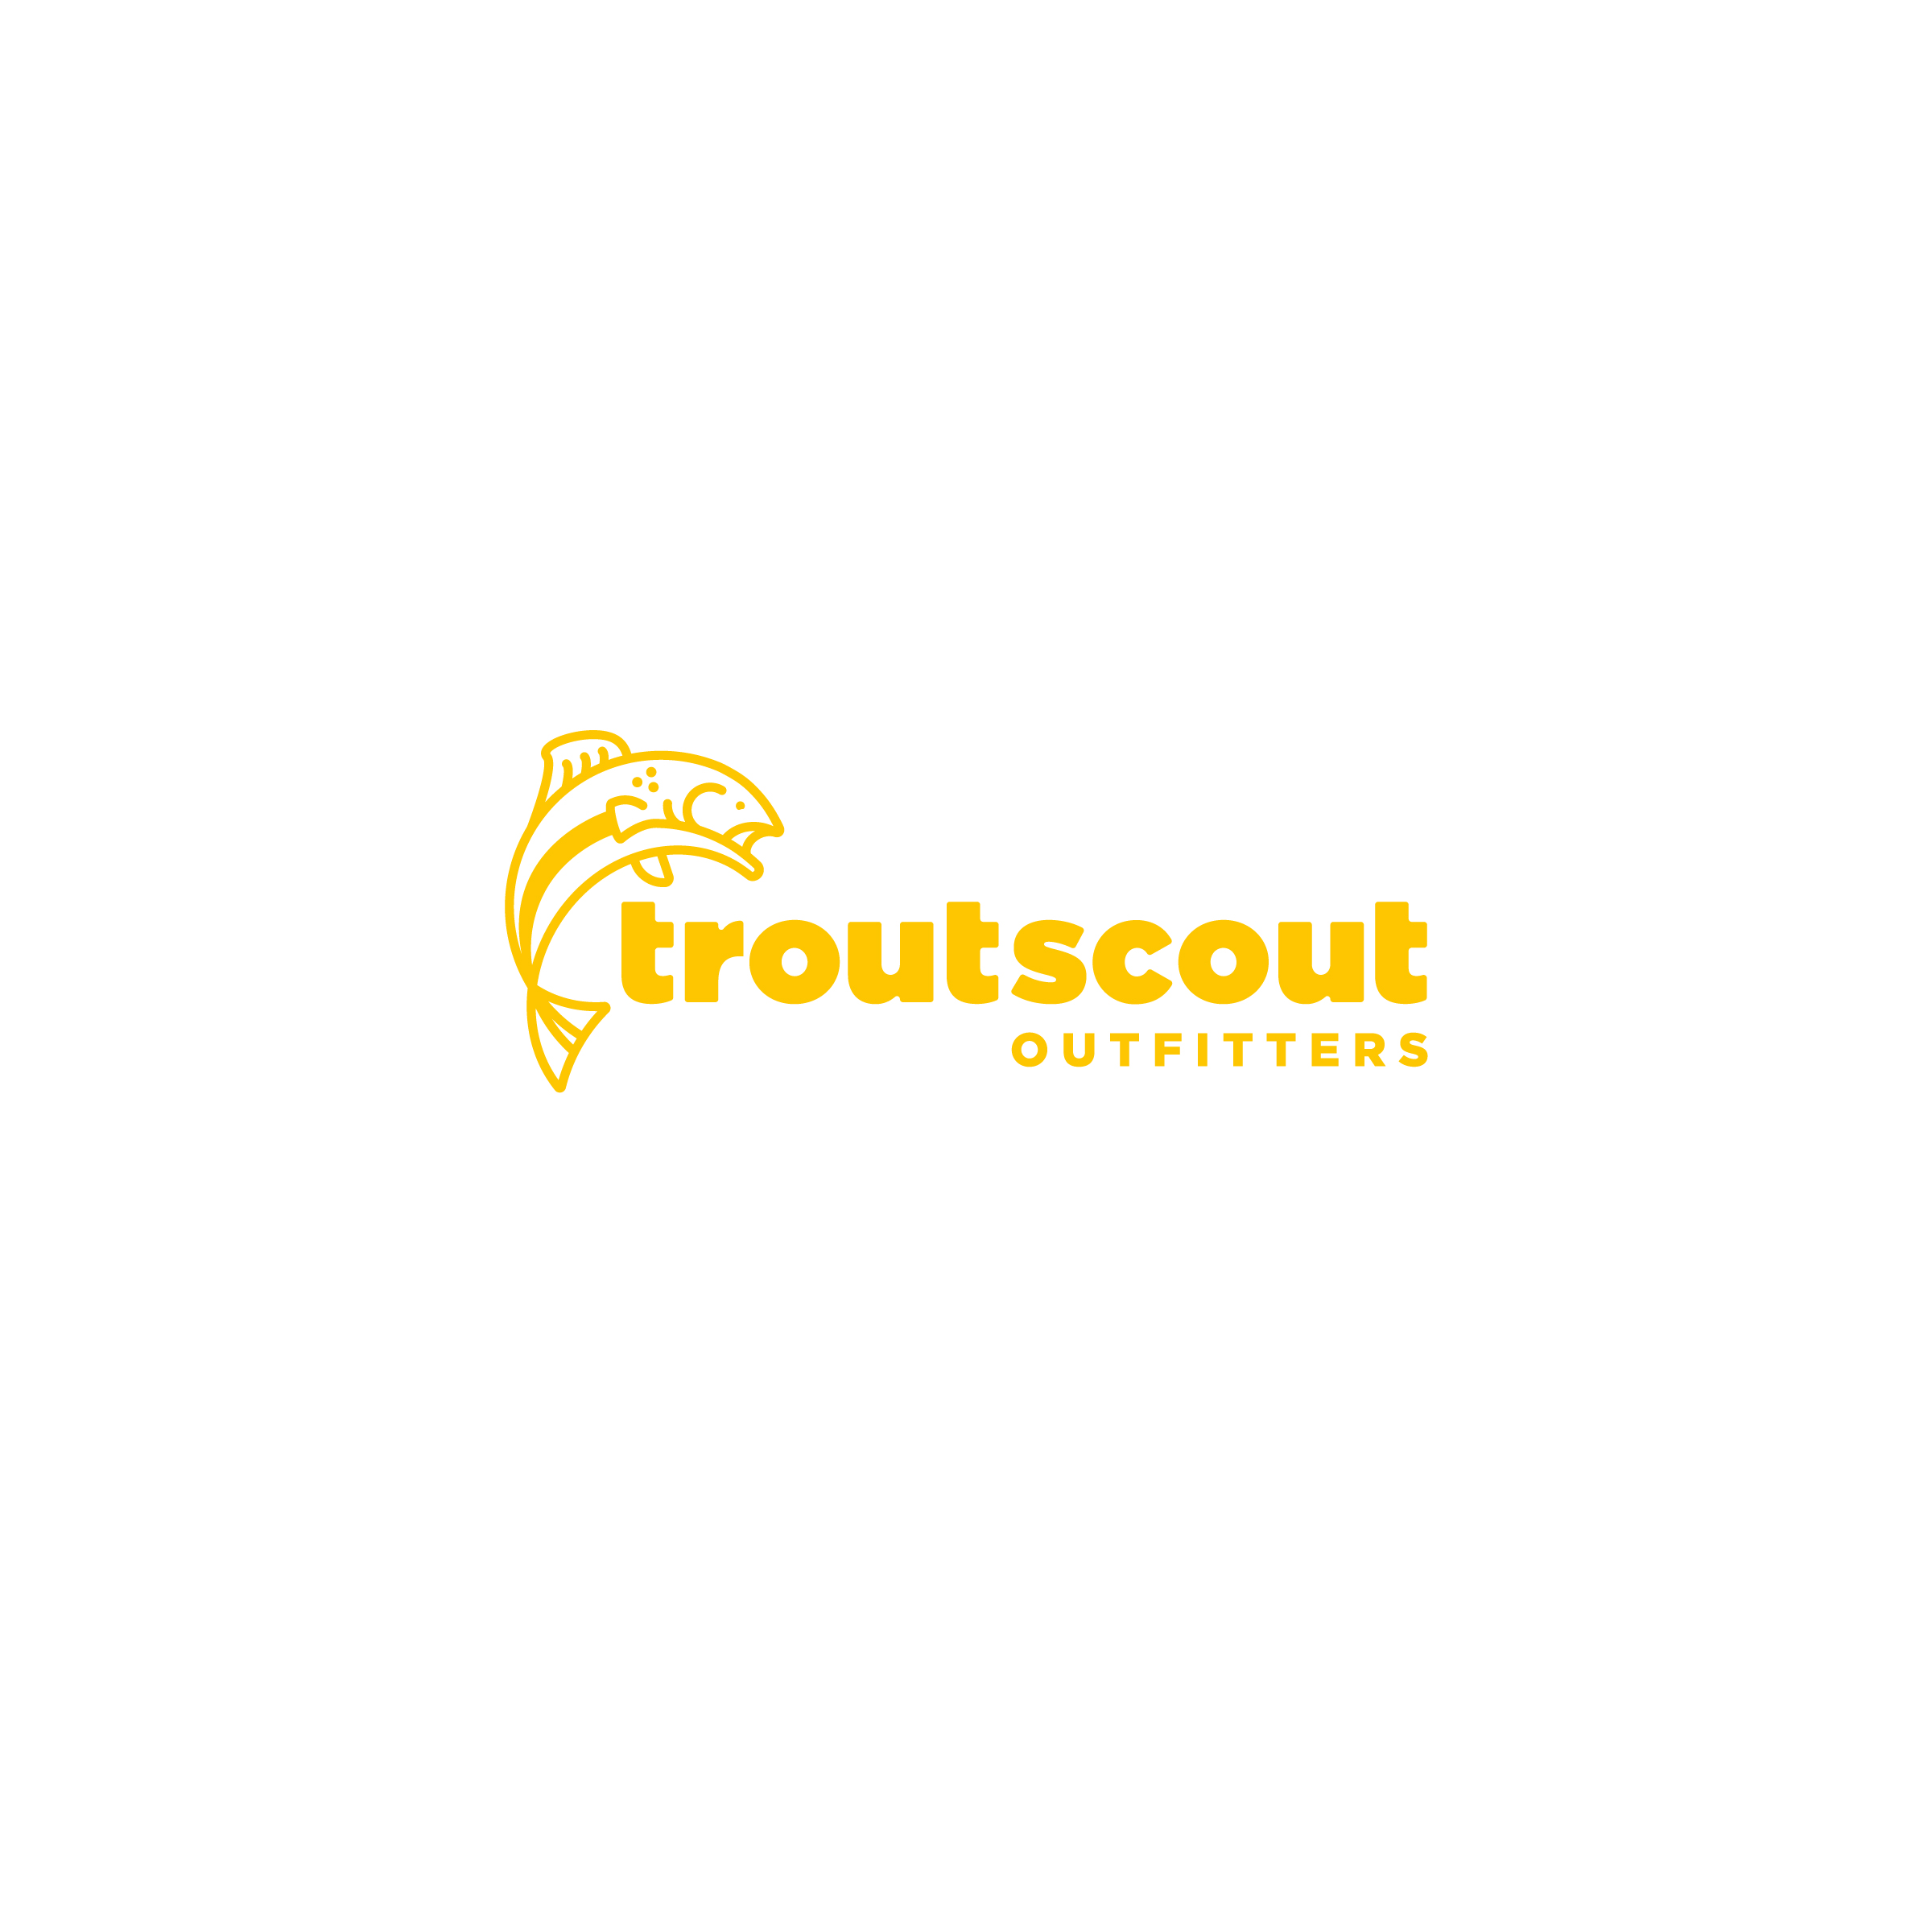 TroutScoutOutfitters_Yellow_Hrzt.jpg